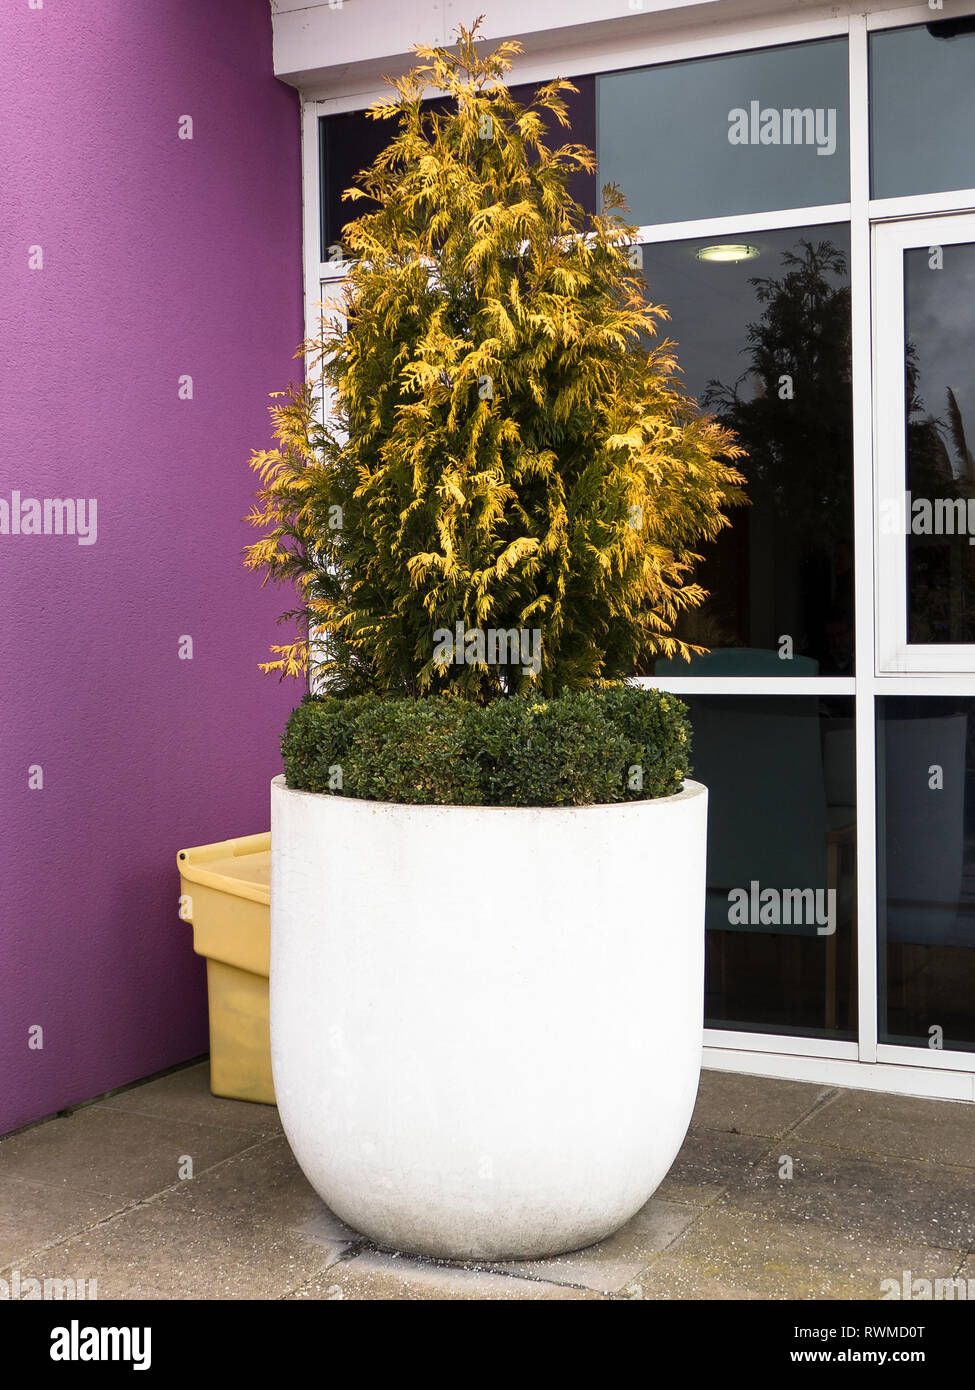 An impressive large white round planter containing a specimen golden leafed evergreen conifer surrounded by a low-growing box edging located outside t Stock Photo